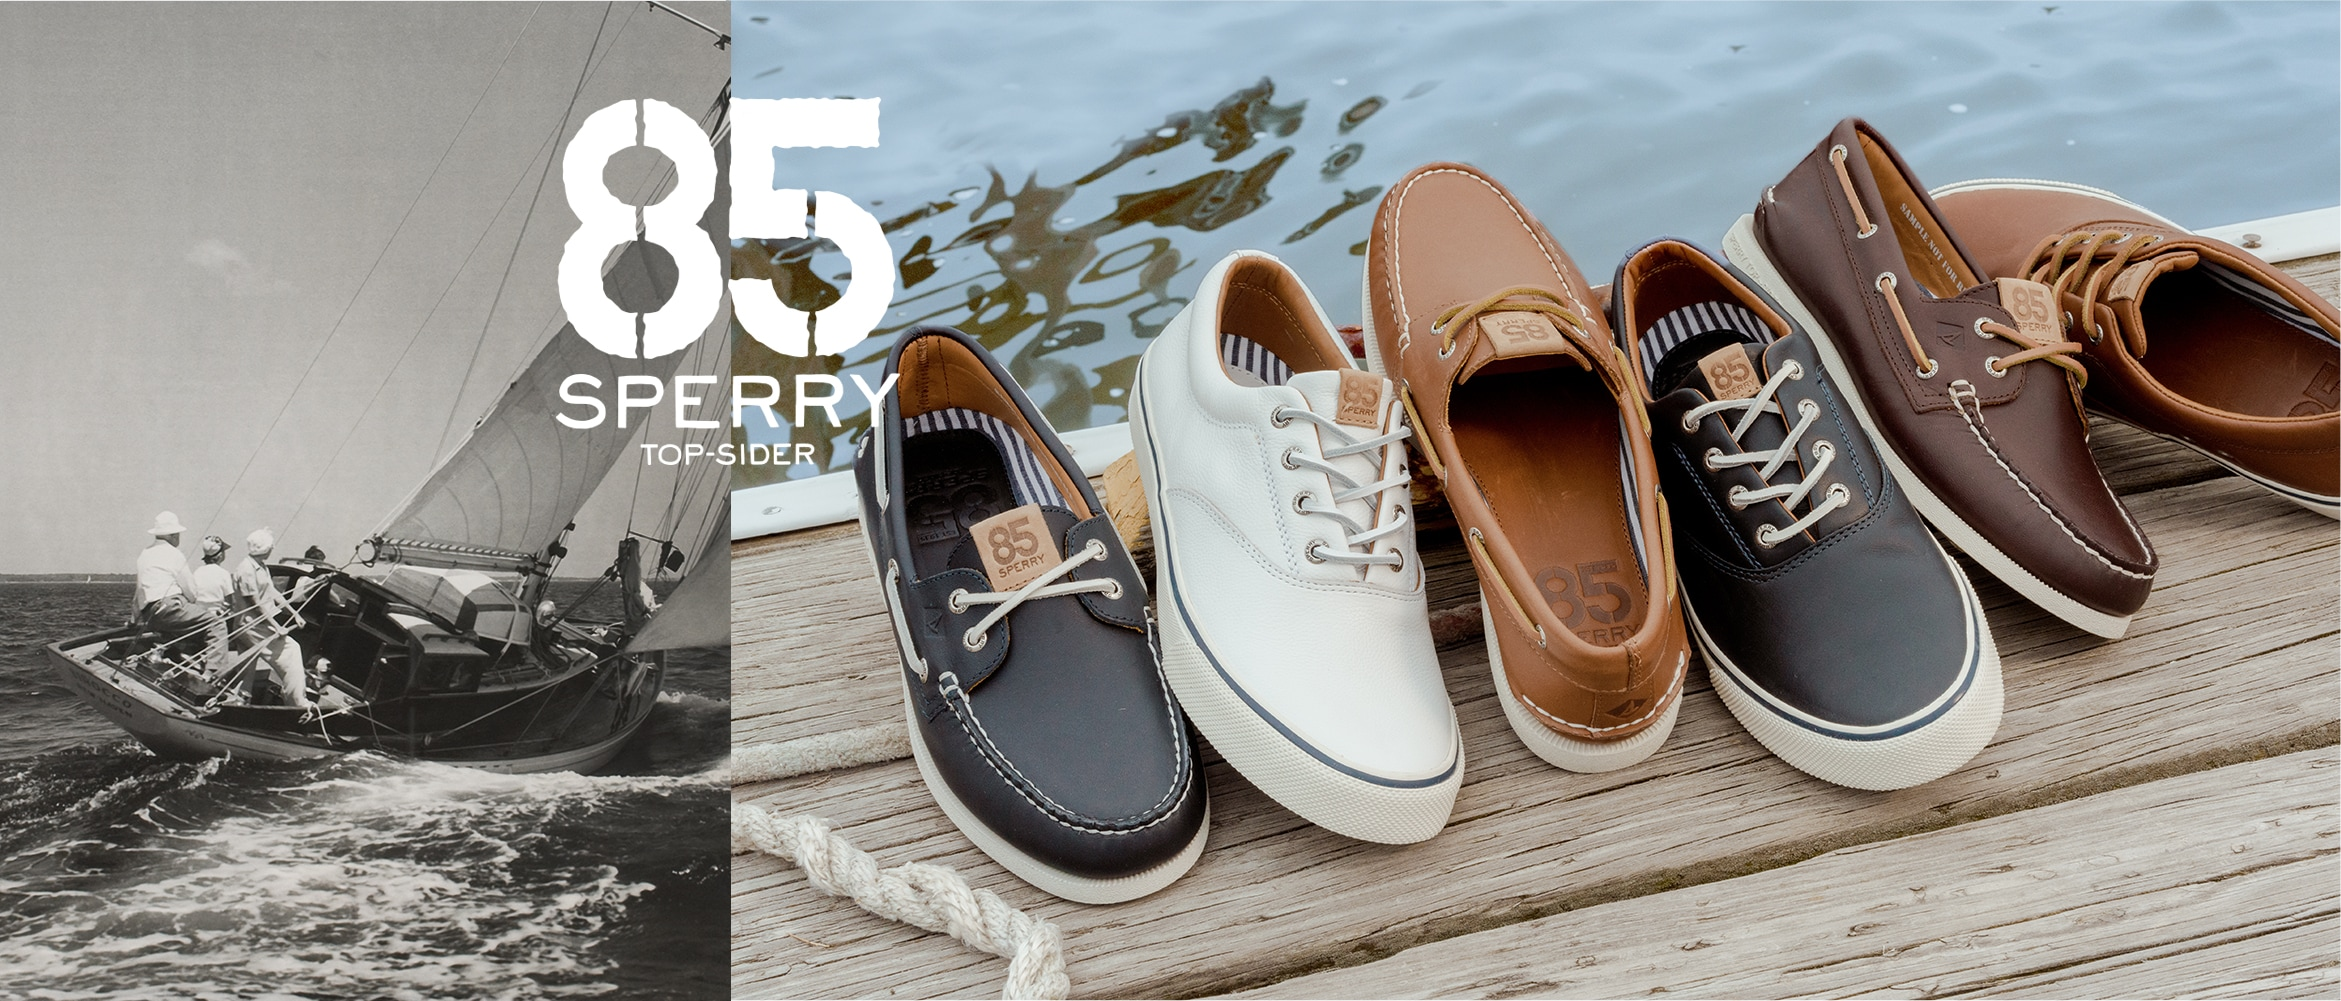 85 Sperry Top-Sider